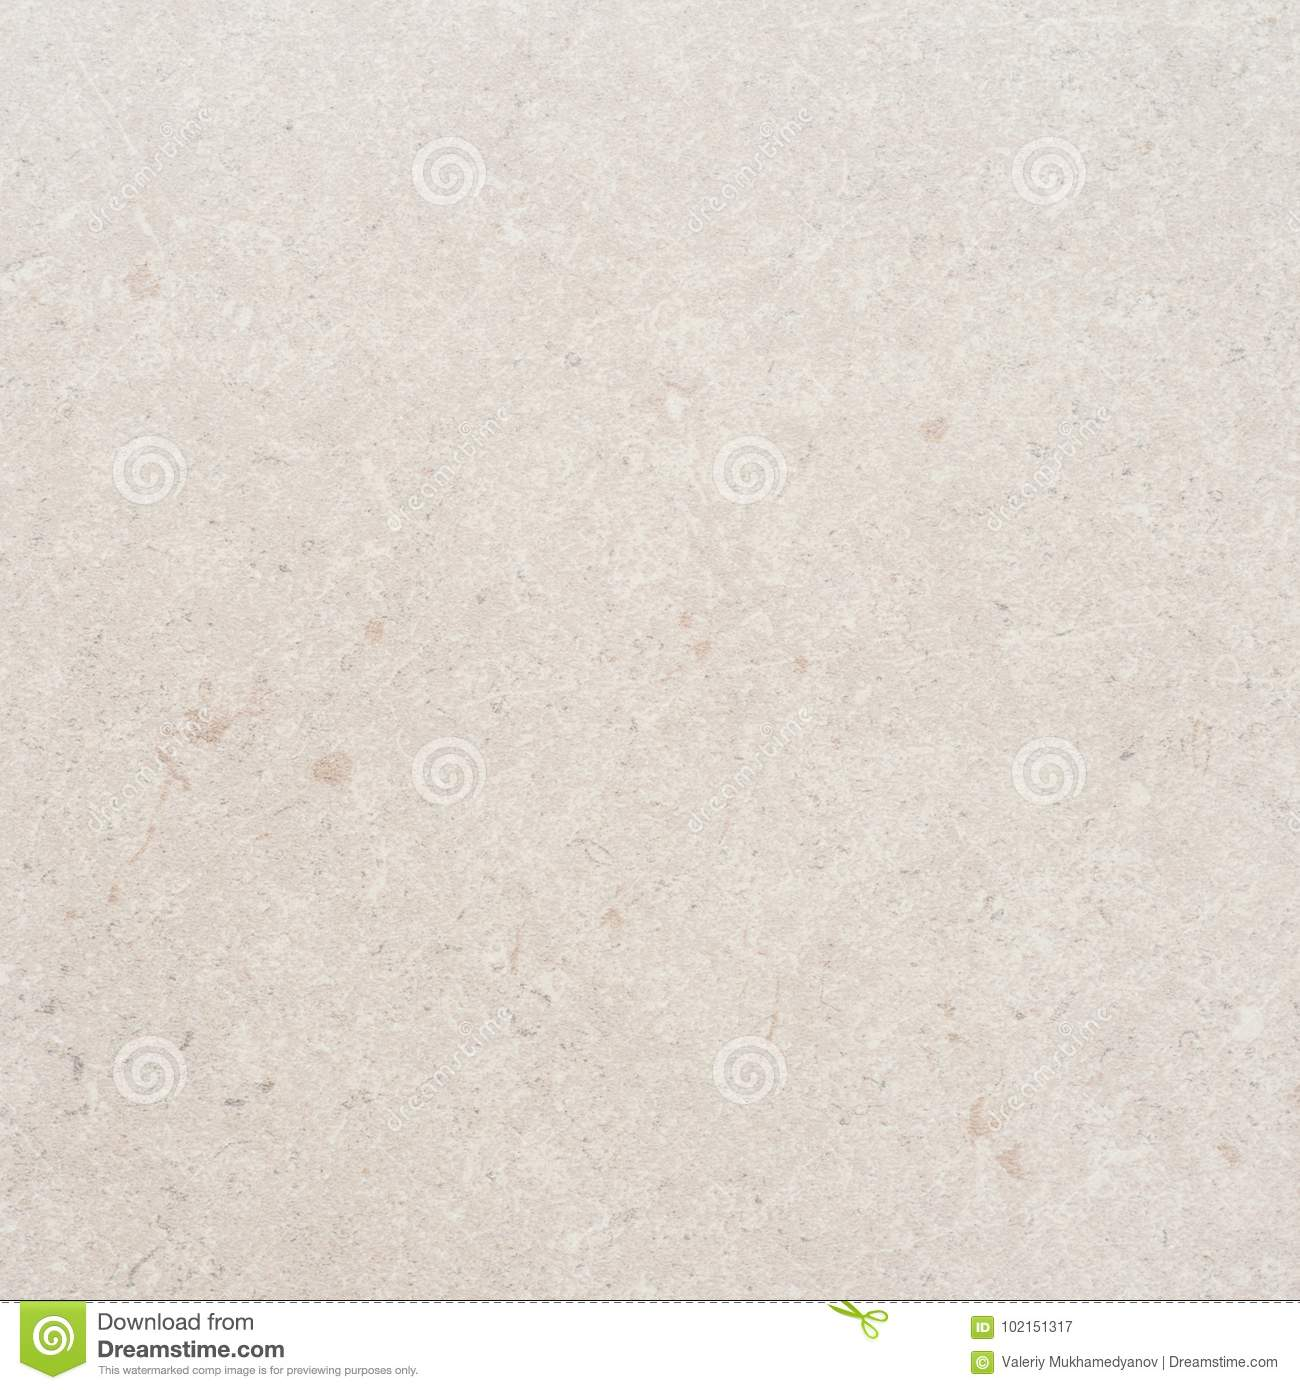 . Beige Concrete Surface  Seamless Texture Stock Image   Image of